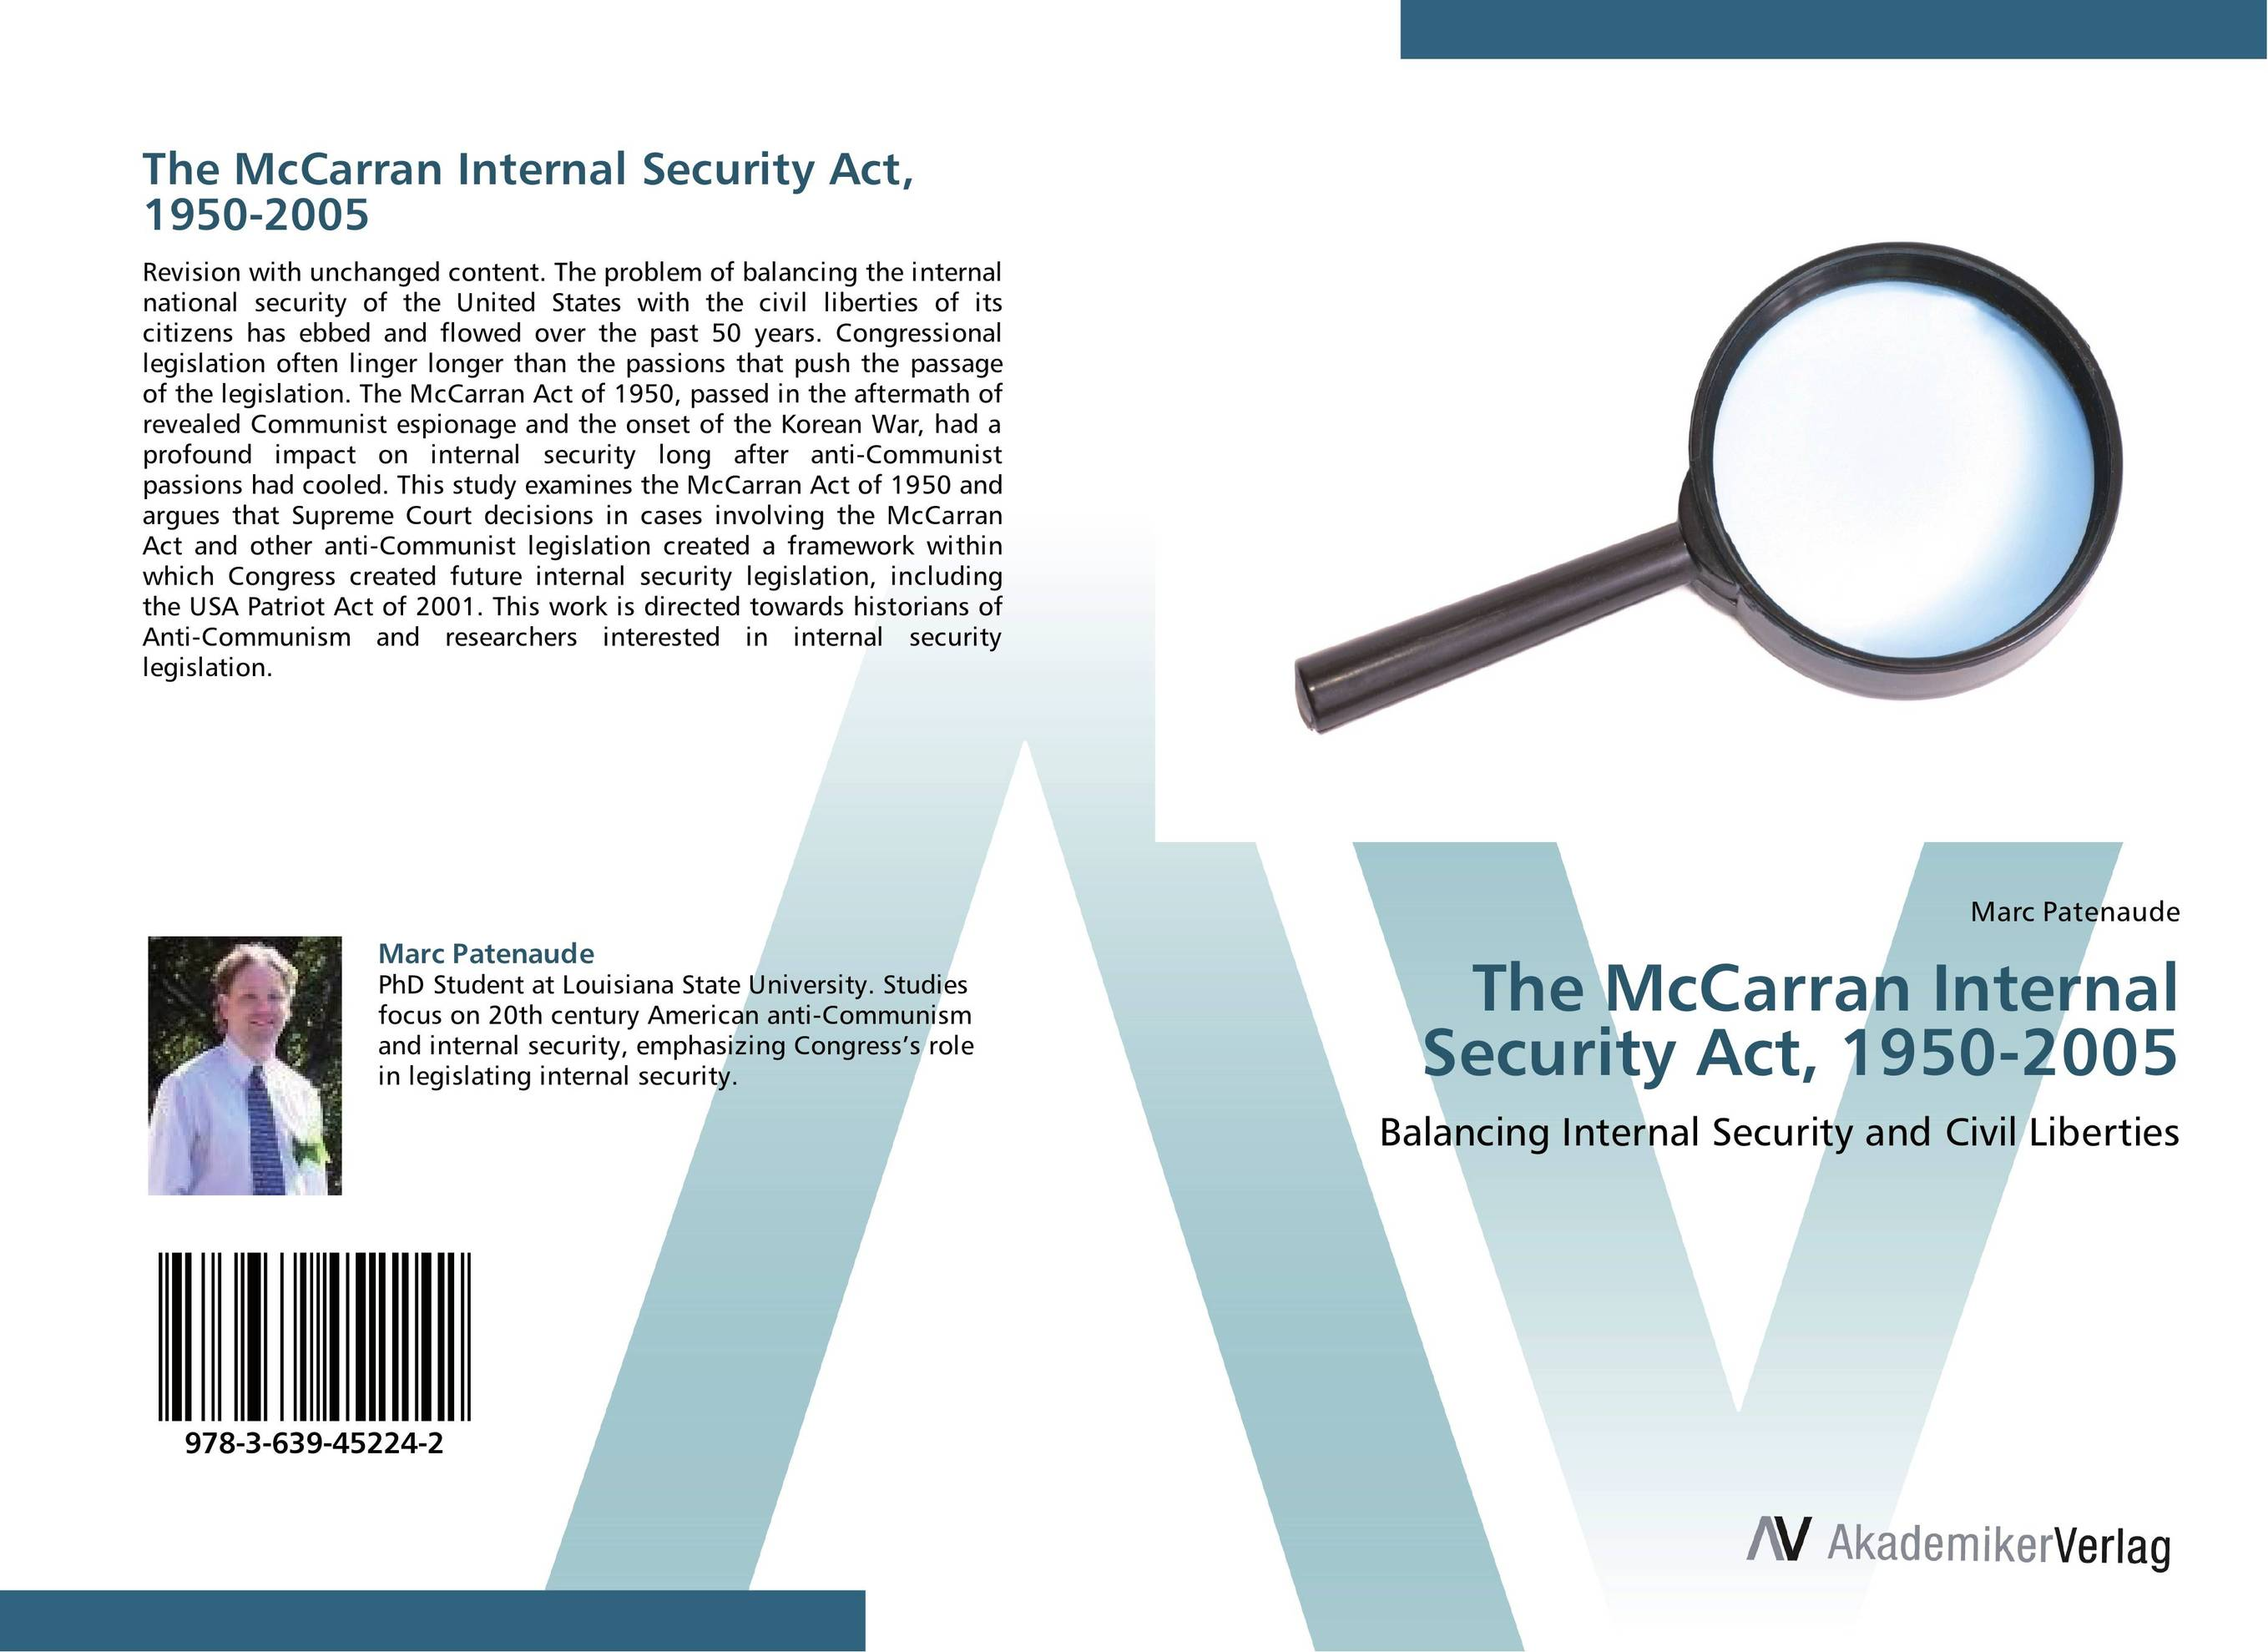 The McCarran Internal Security Act, 1950-2005 victorian america and the civil war